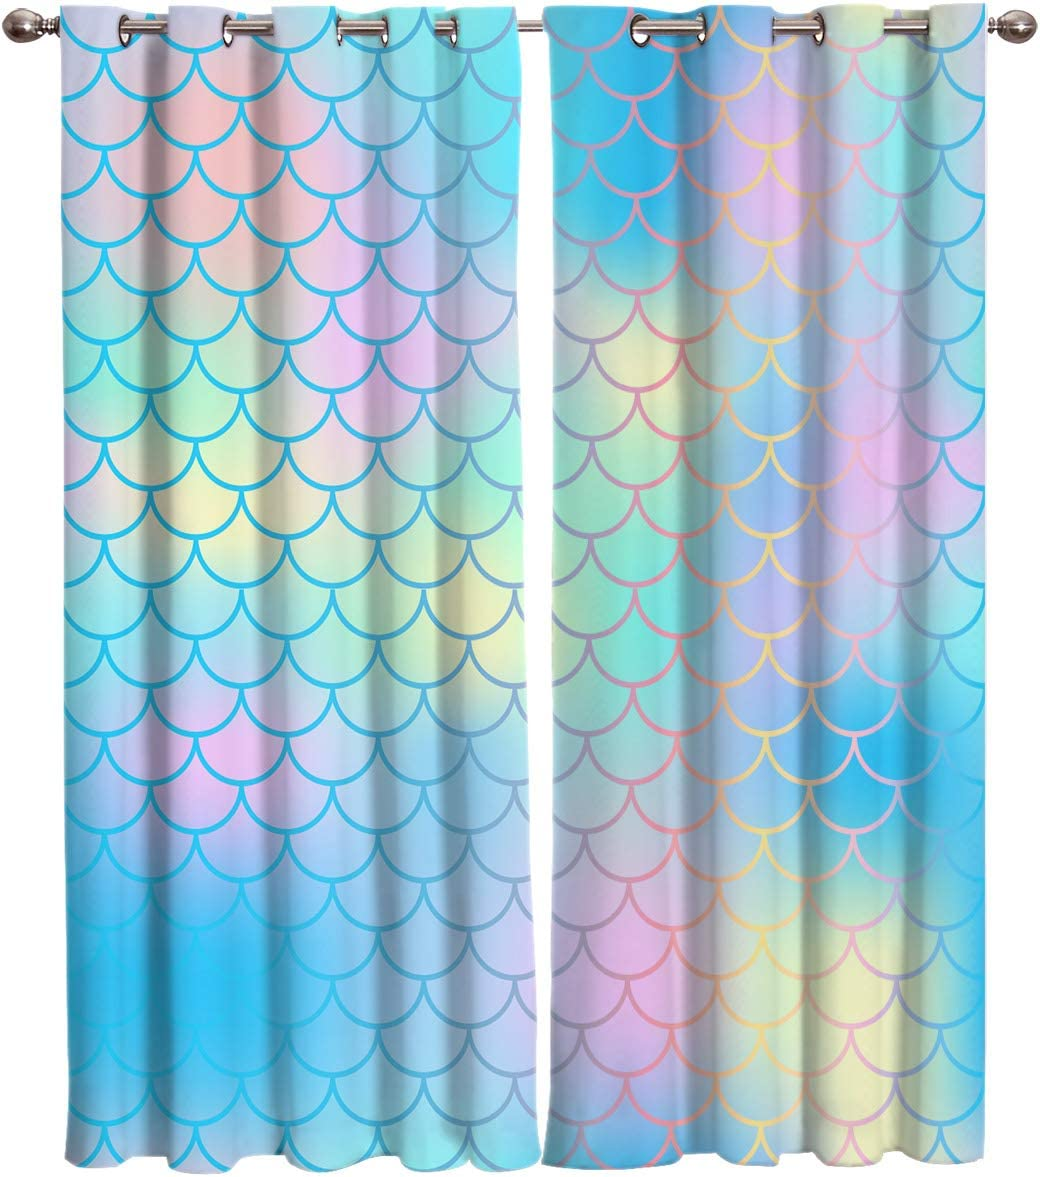 Arts Language 2 Panels Blackout Curtains for Boys Girls Bedroom Fish Scale Mermaid Printed Windows Treatment Grommet Drapes for Livingroom Office 52 W X96 H InX2